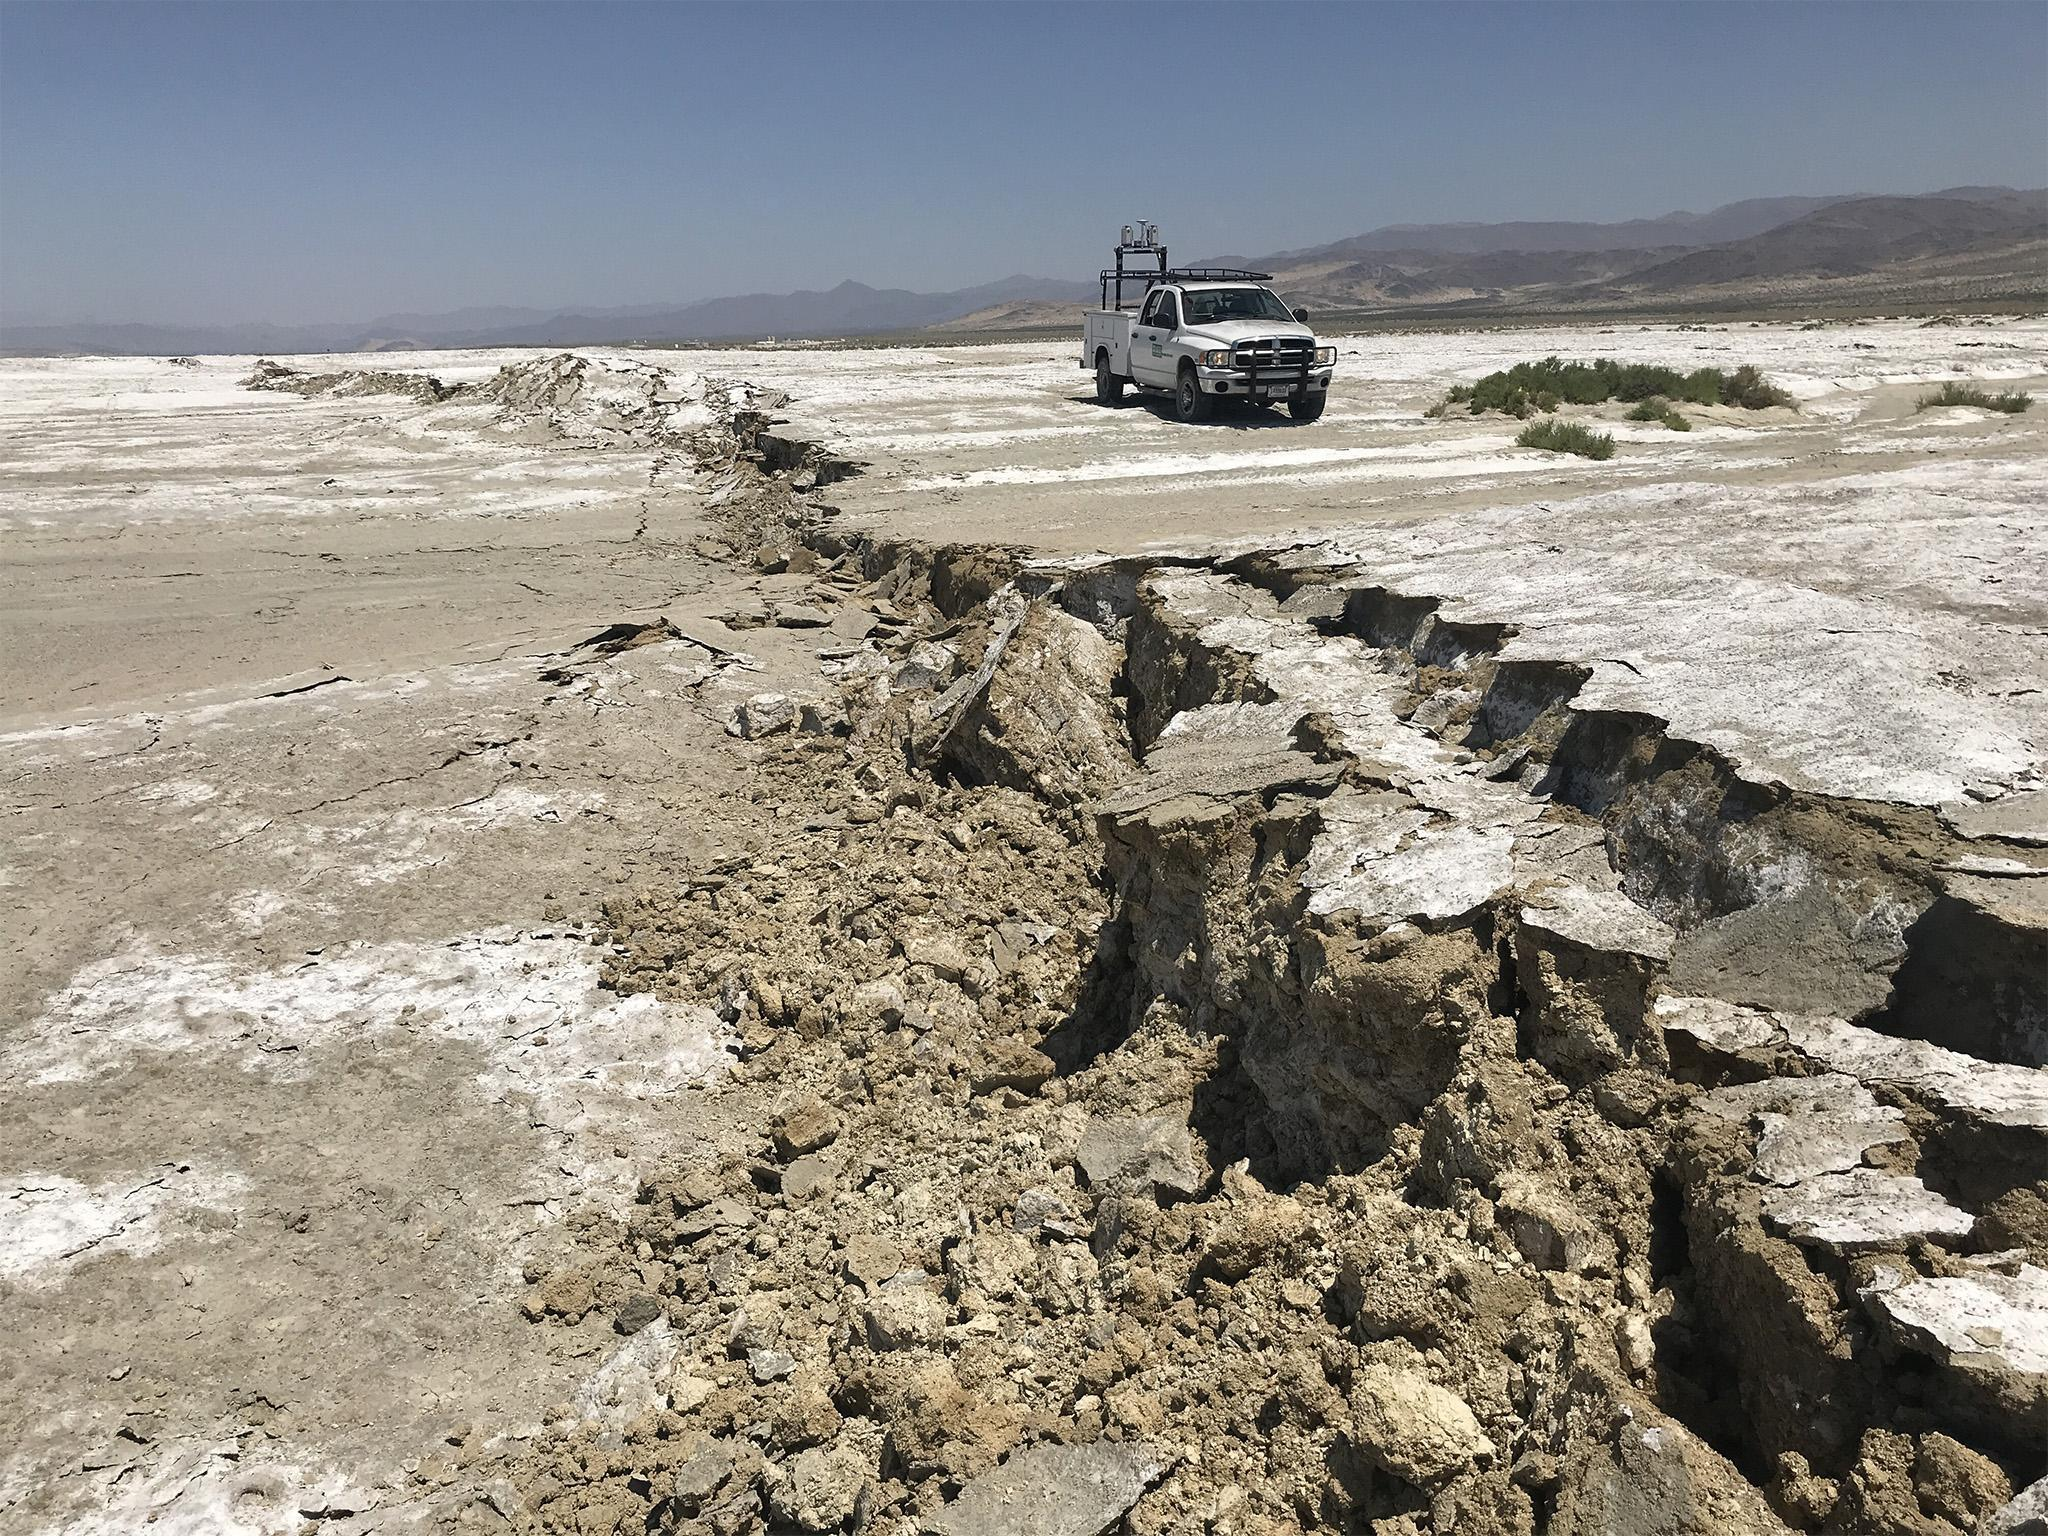 Feds Urged To Restudy Seismic Risk At Nuke Dump Site After California Earthquakes